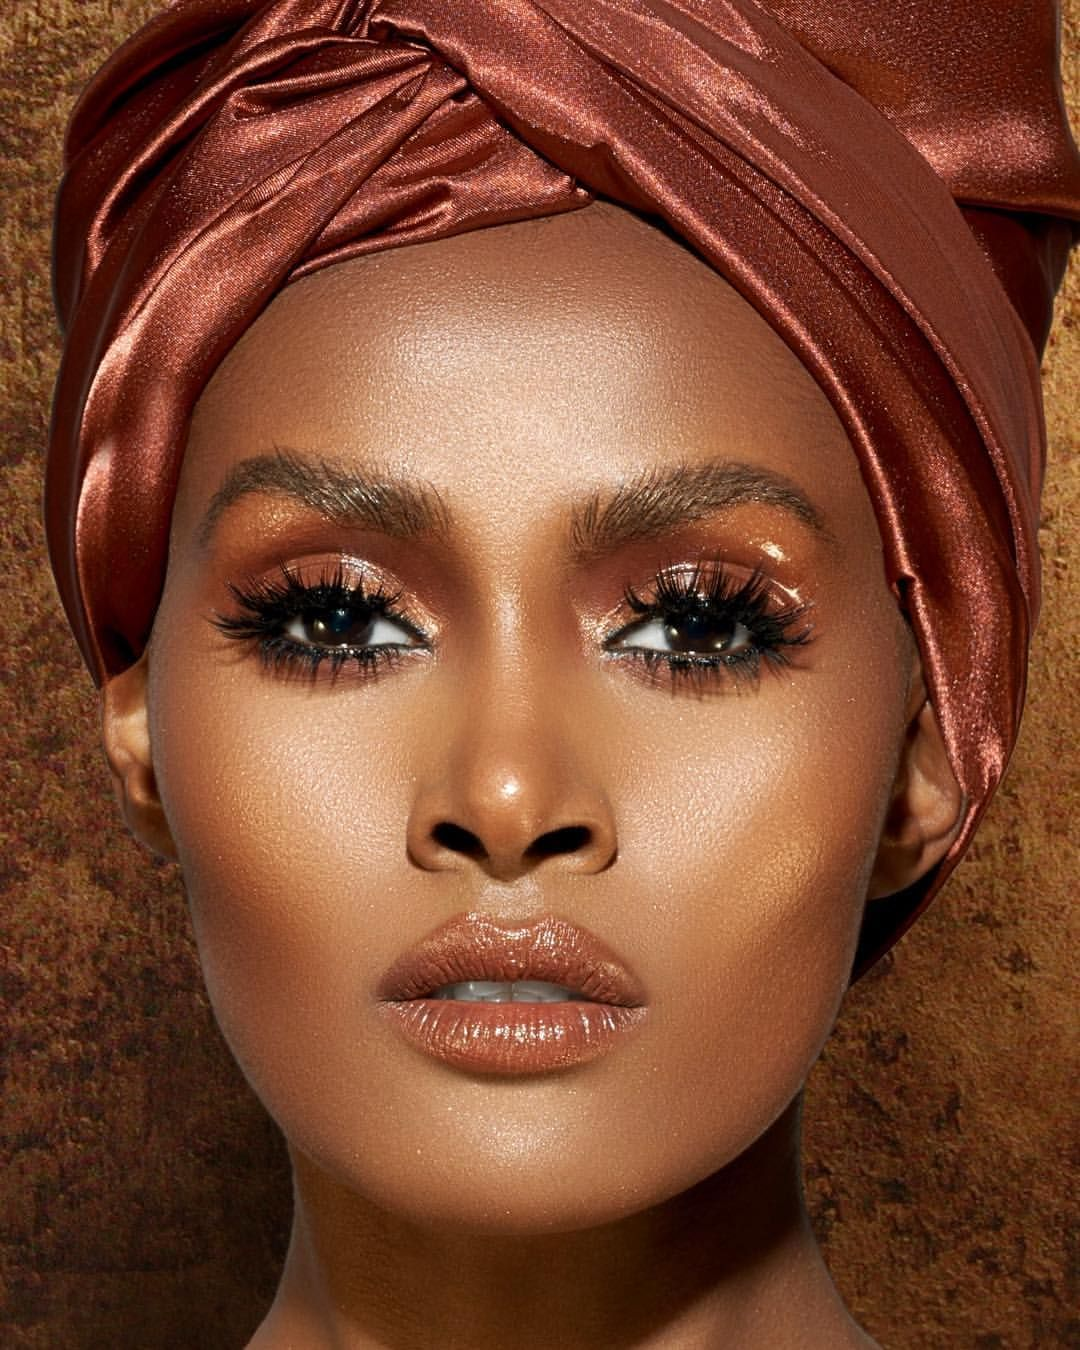 Sunday Morning lash & Glow Glow easily and effortlessly